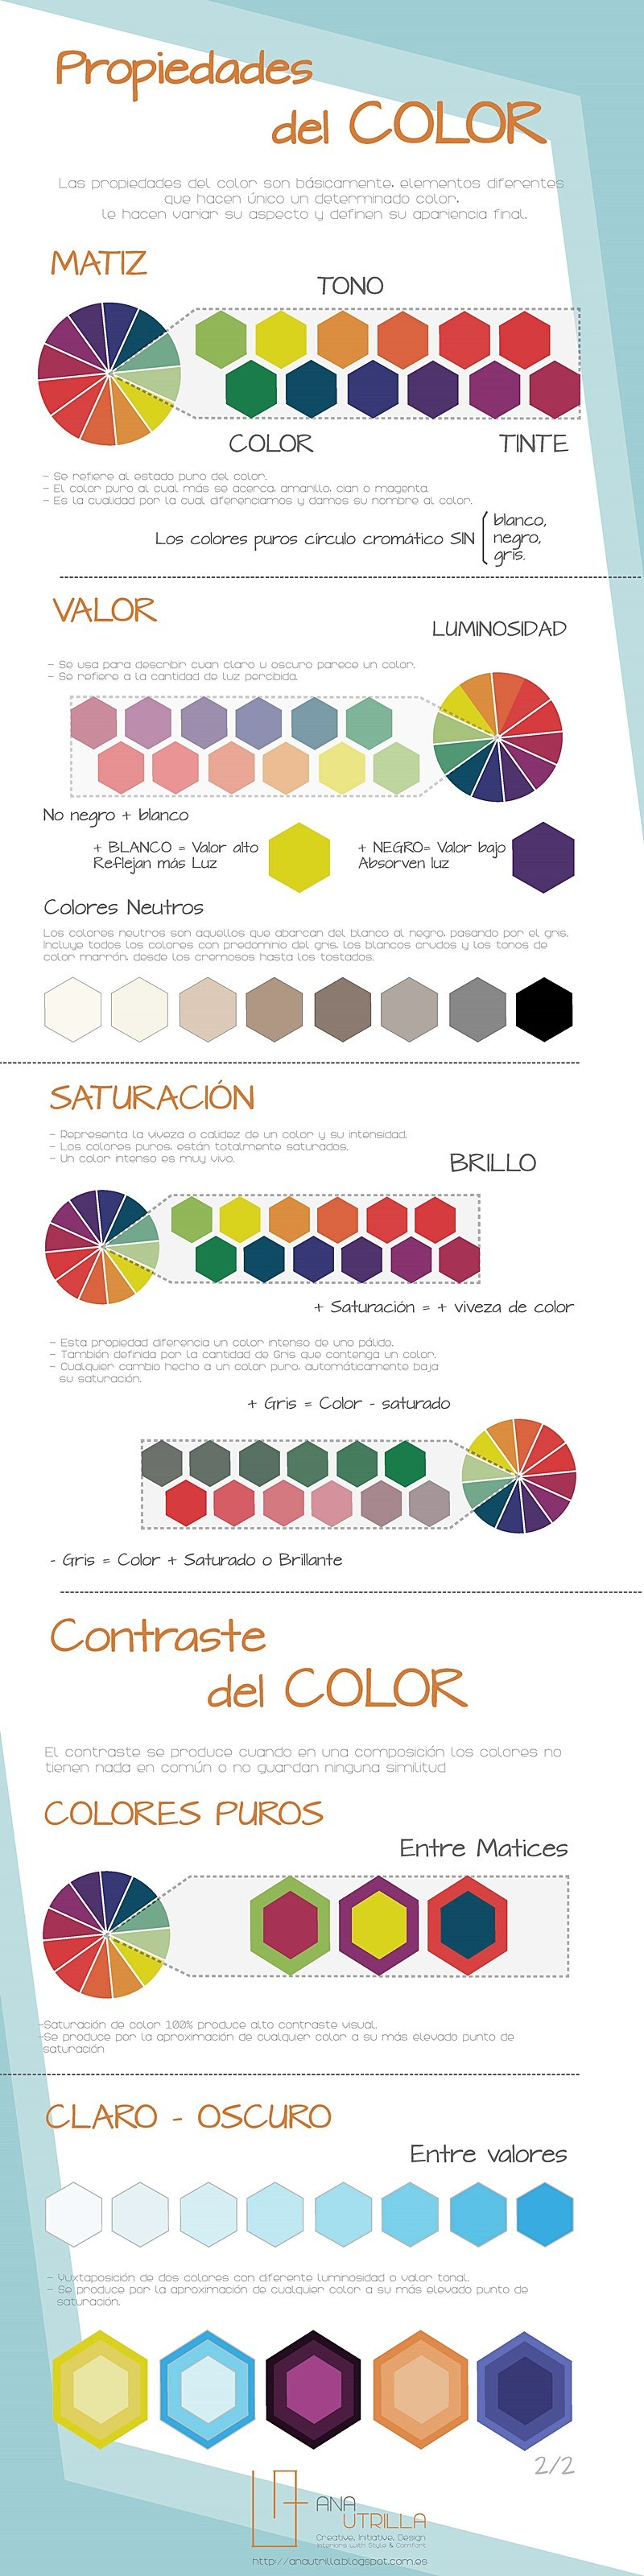 importancia del color en la decoracion de interiores